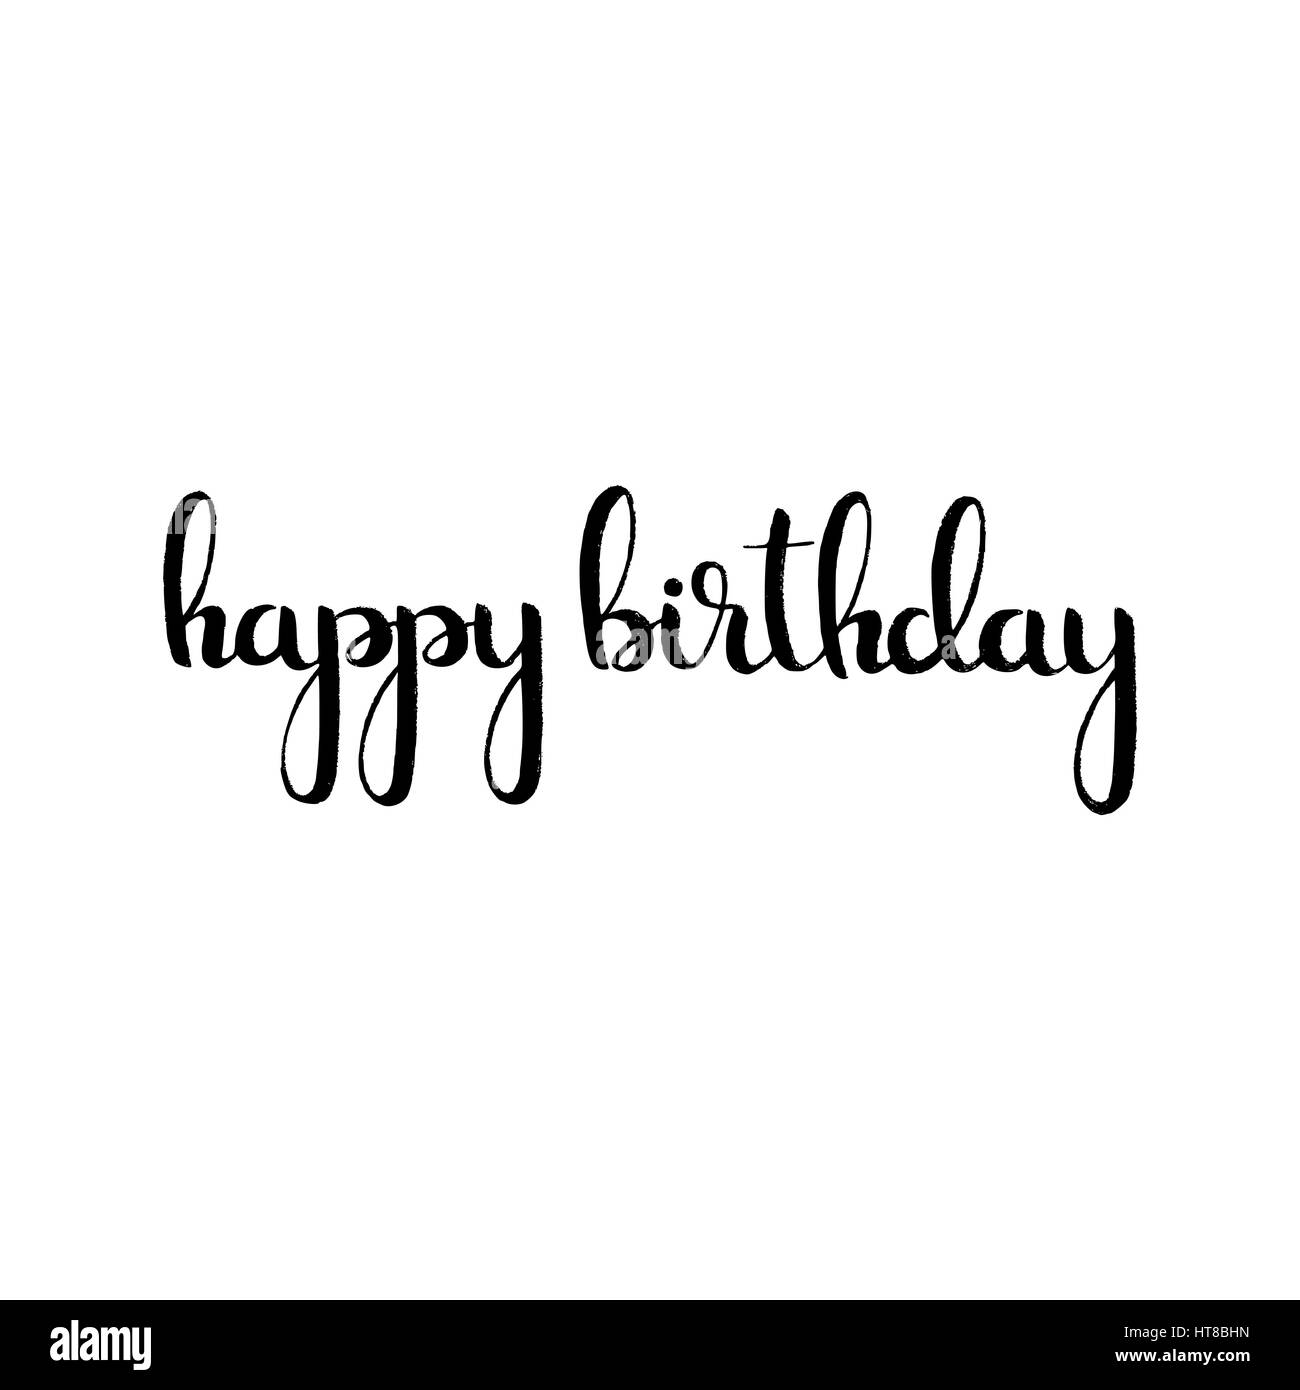 Happy Birthday Handwritten Lettering Modern Vector Hand Drawn Calligraphy Isolated On White Background For Your Postcard Or Greeting Card Design